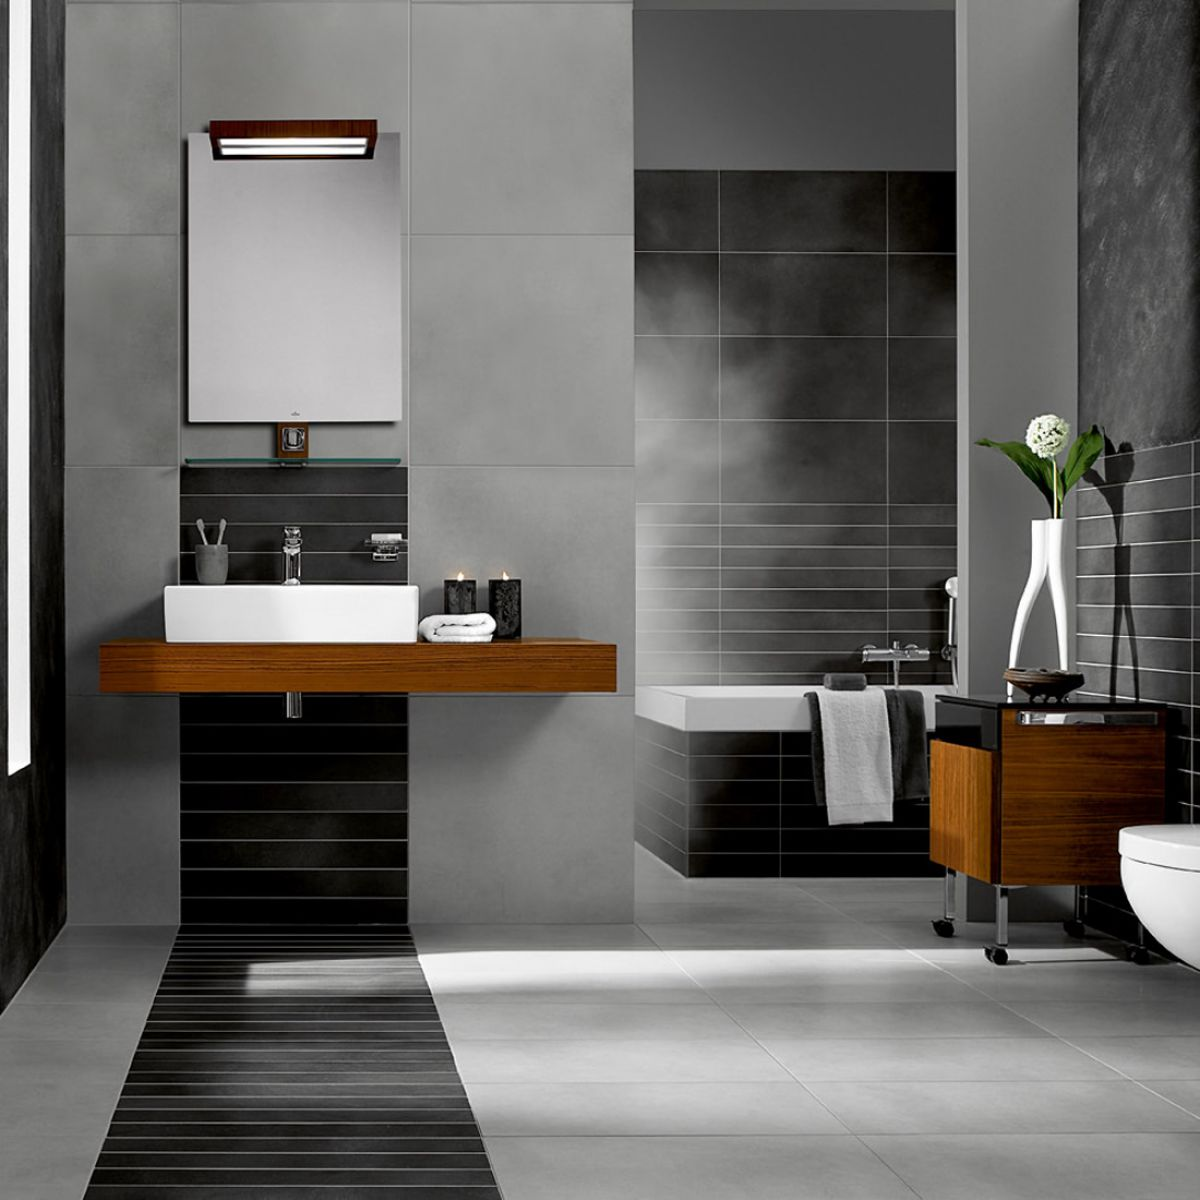 villeroy and boch bathroom tiles villeroy amp boch bernina tile 2660 60 x 60cm uk bathrooms 24494